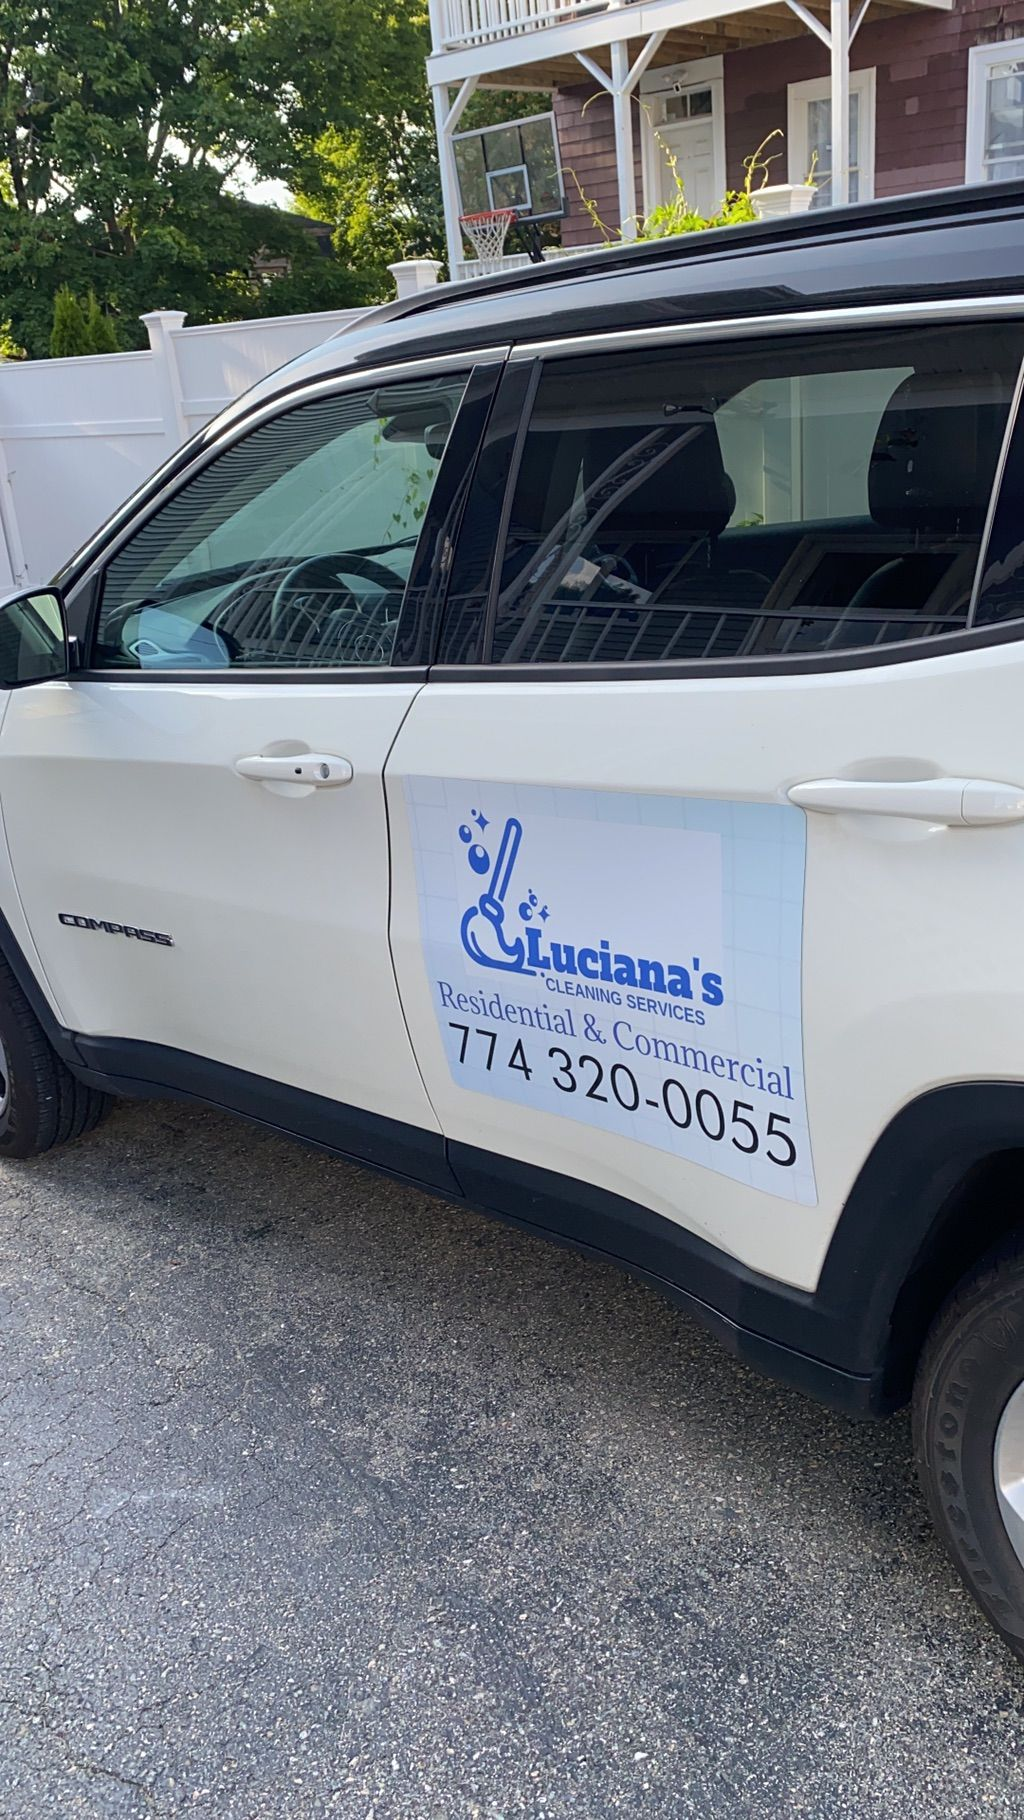 Luciana's cleaning services